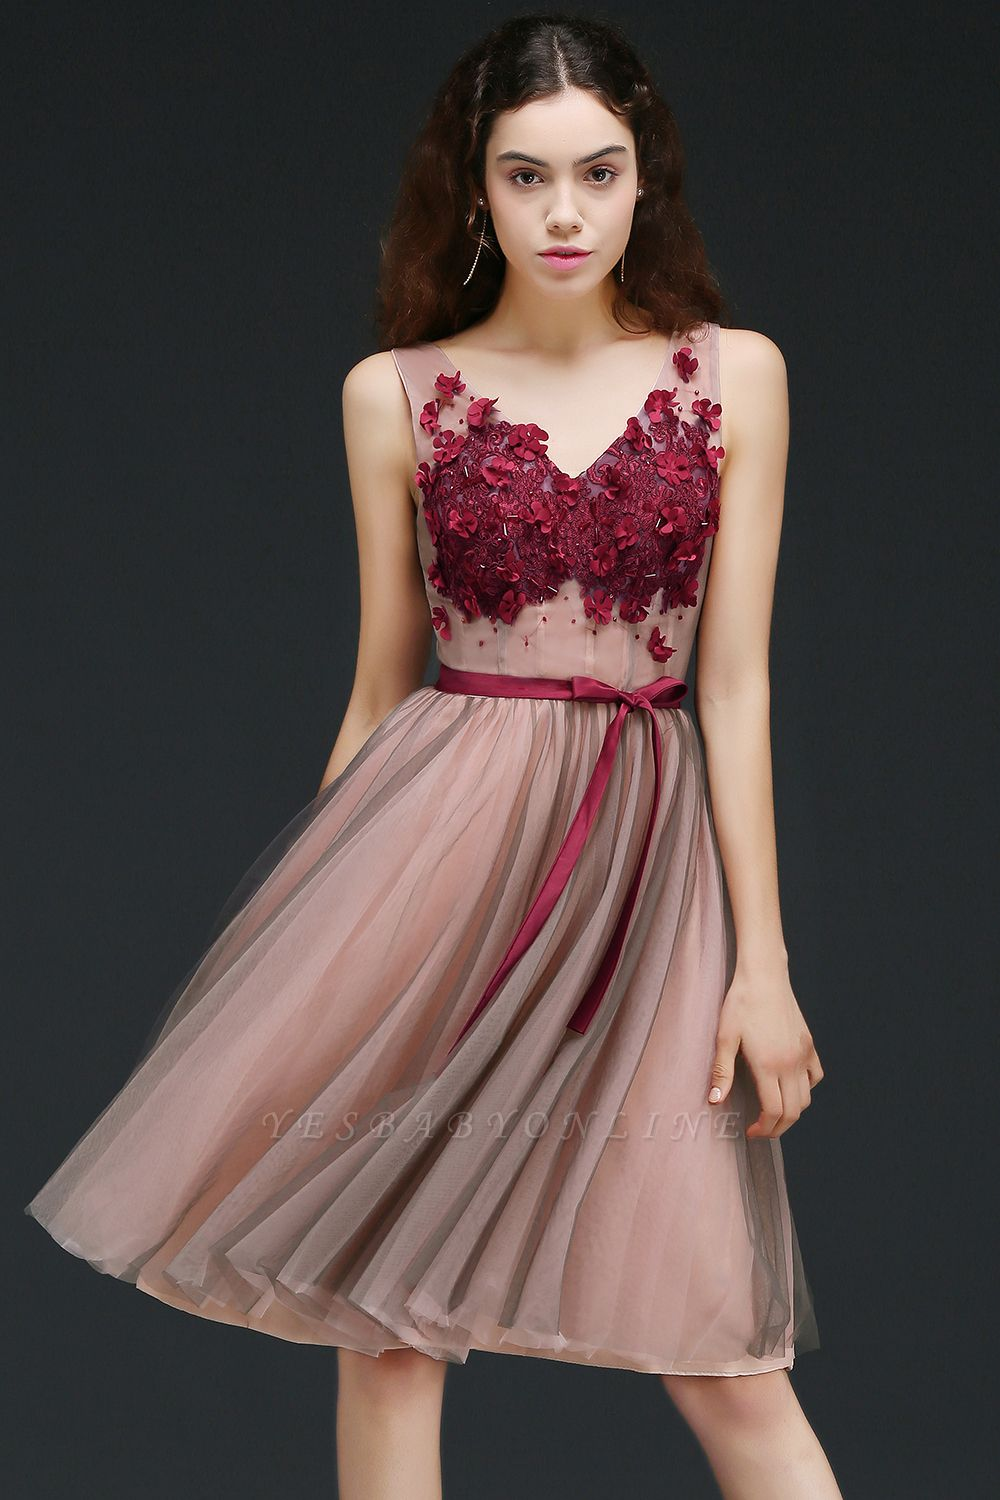 Princess V-neck Knee-length Tulle Homecoming Dress with a Self-tie Belt